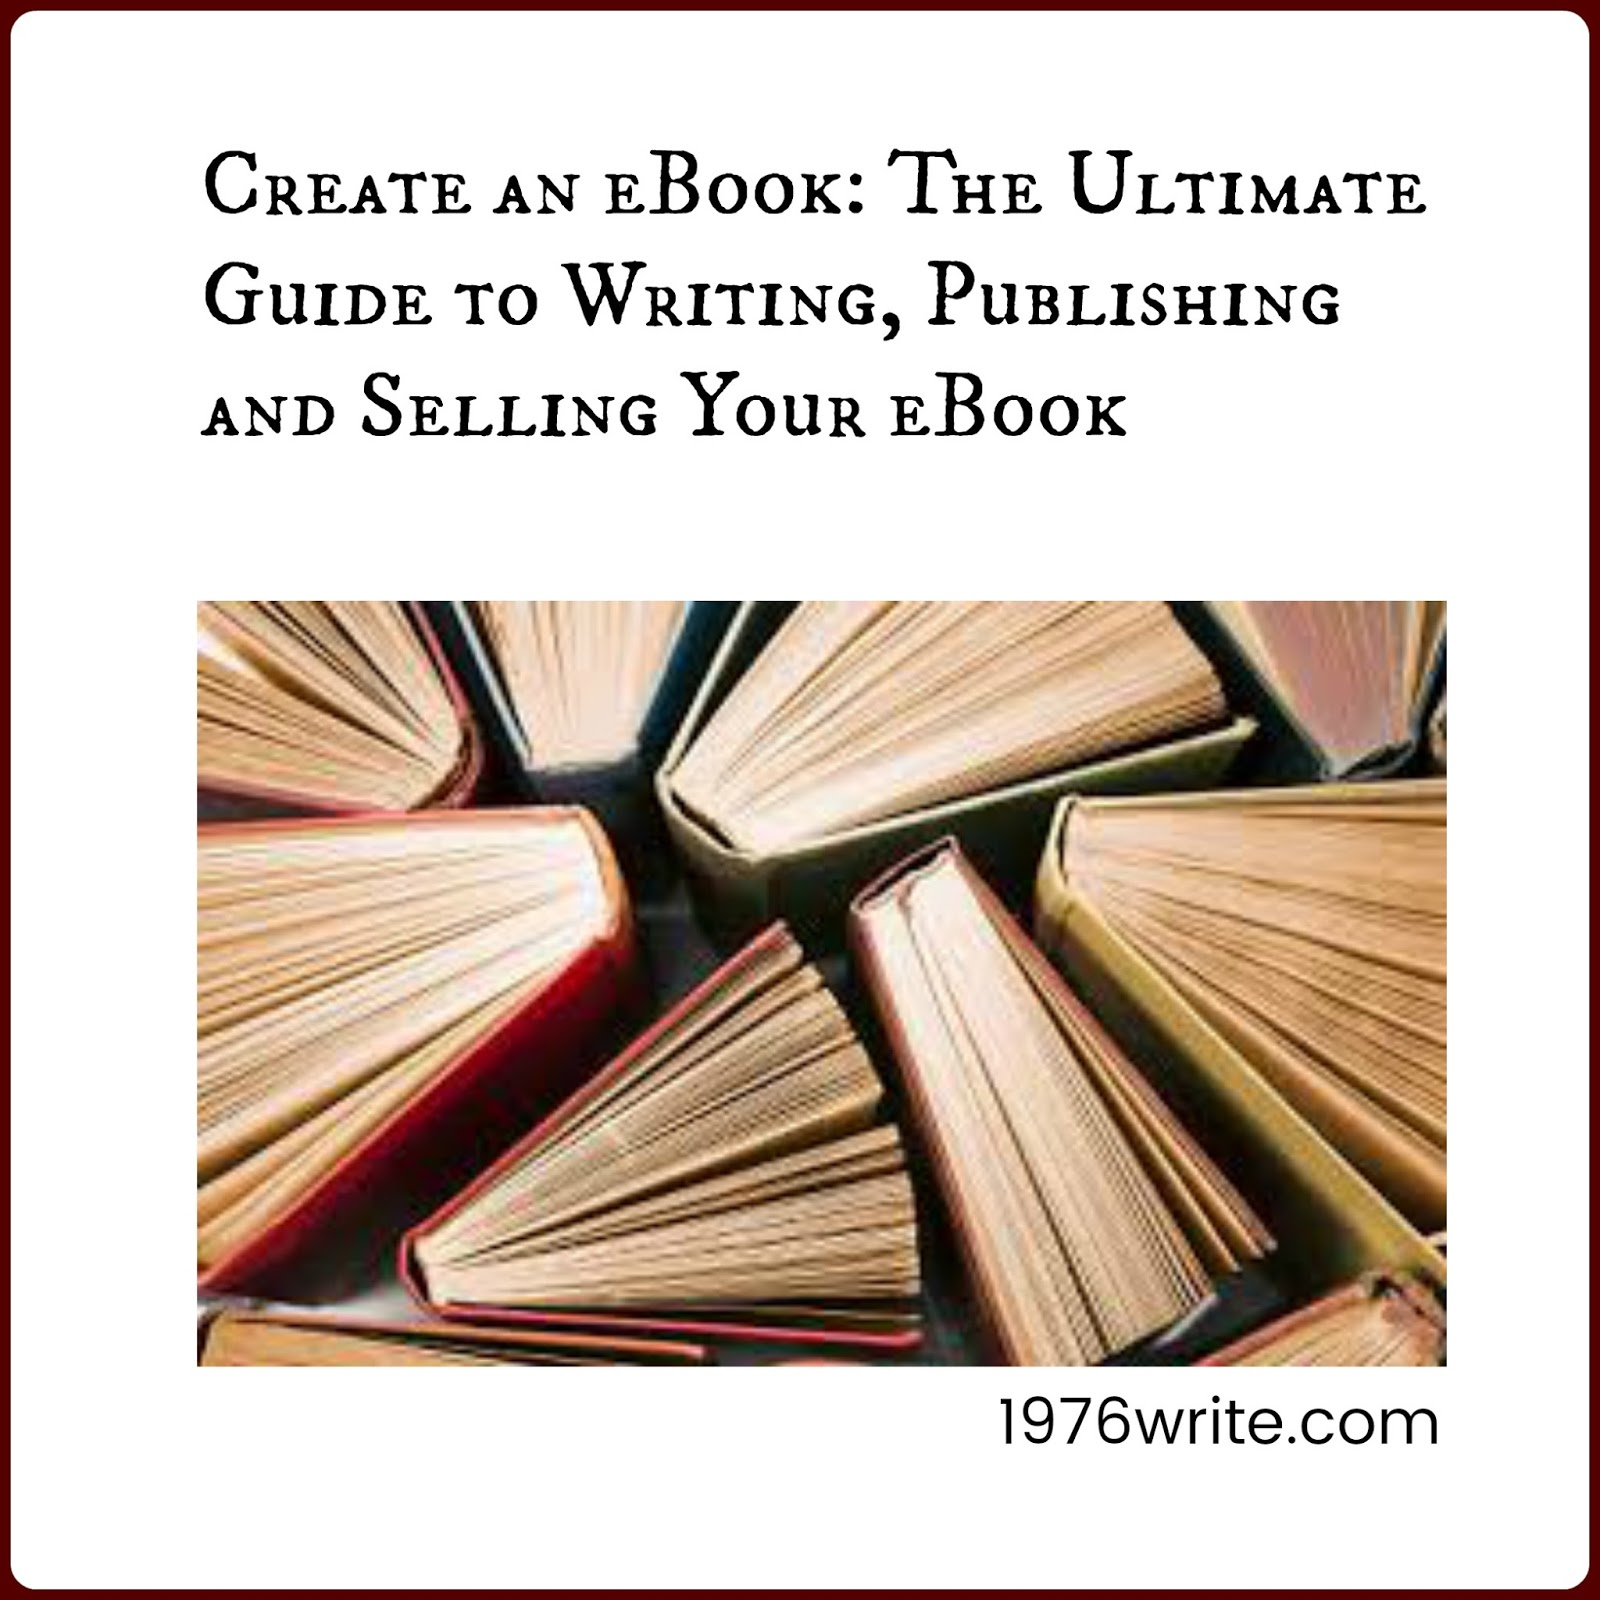 1976write july 2017 create an ebook the ultimate guide to writing publishing and selling your ebook fandeluxe Gallery